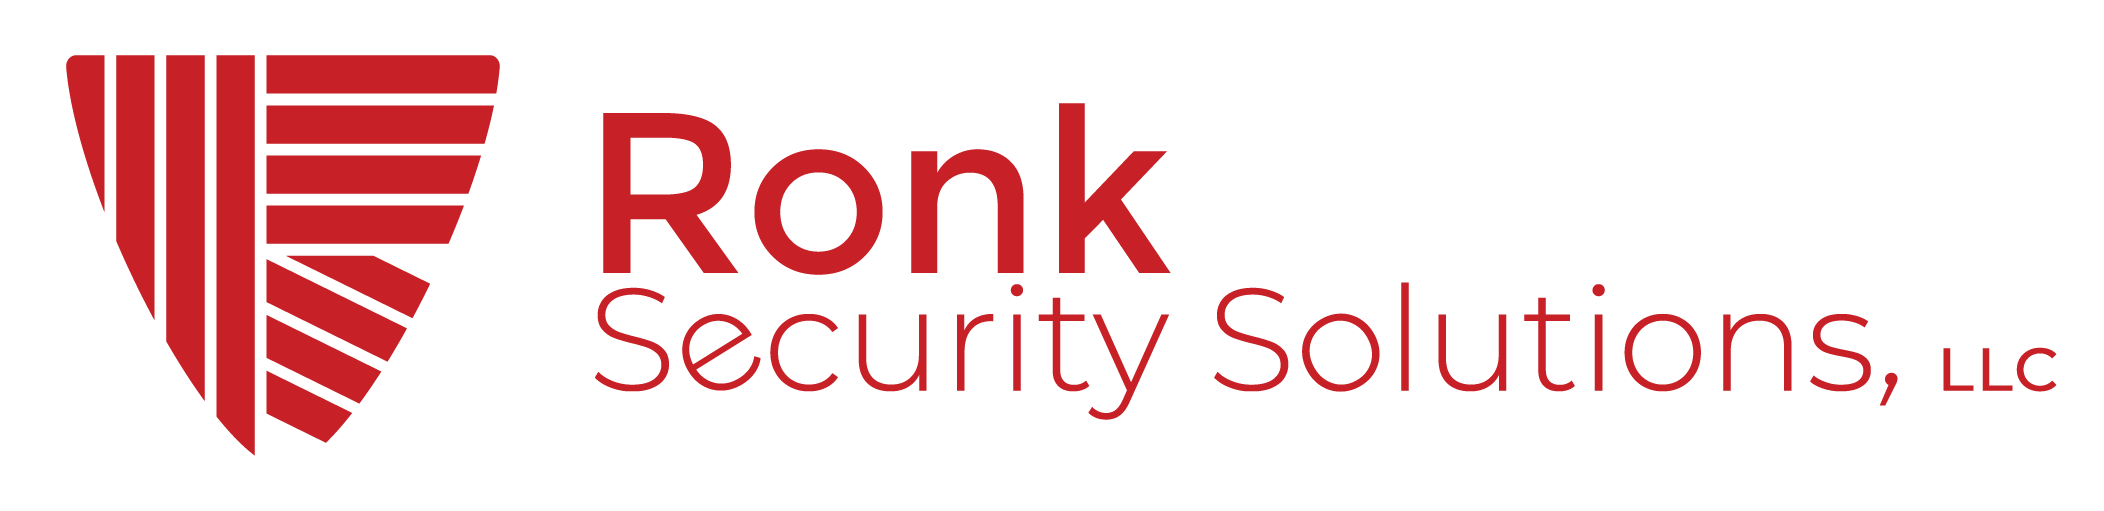 Active Shooter Training Company Ronk Security Solutions, LLC